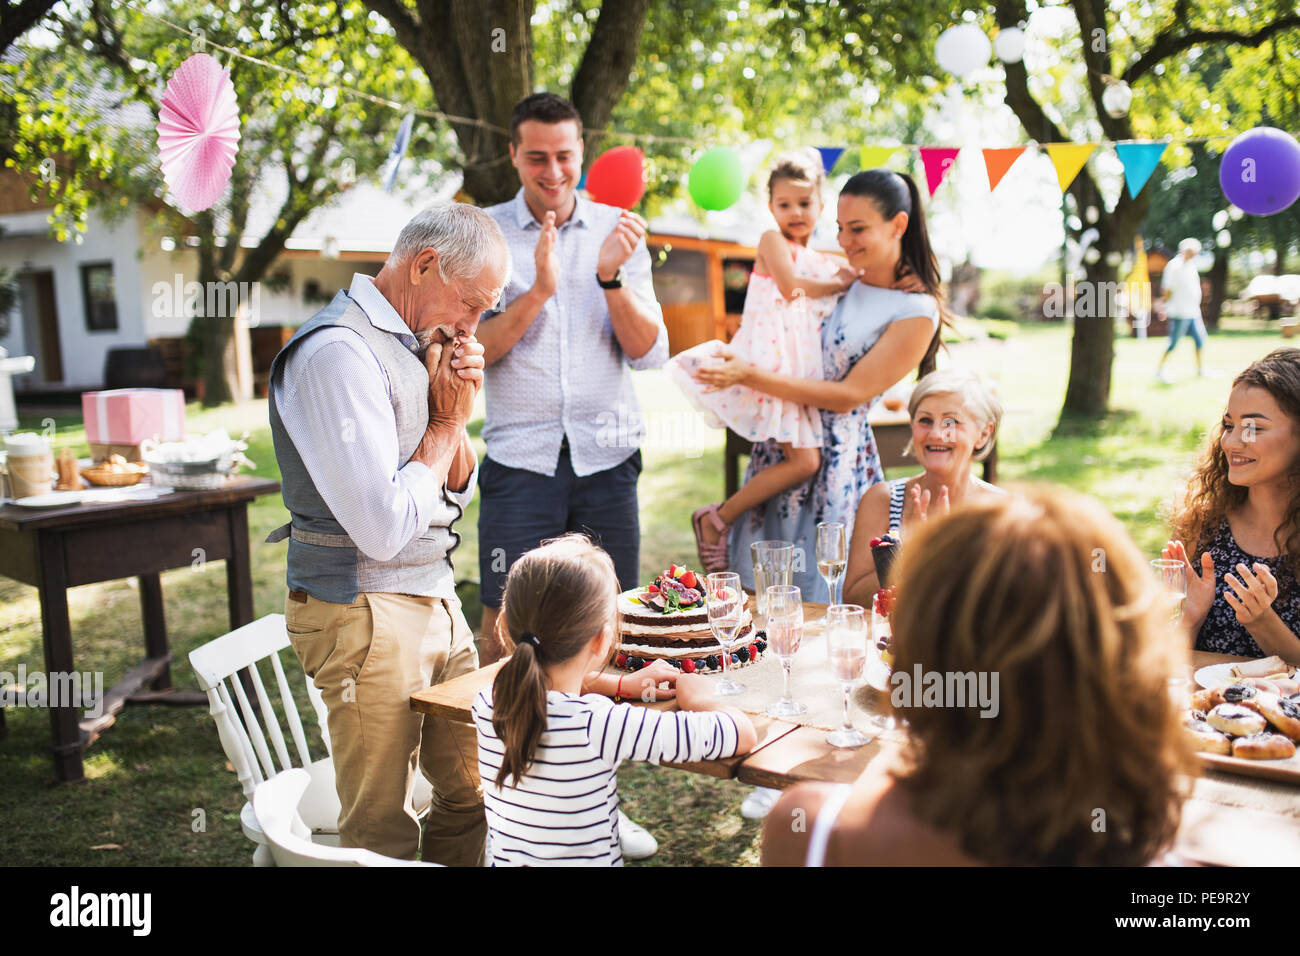 A senior man with an extended family looking at the birthday cake, crying. - Stock Image